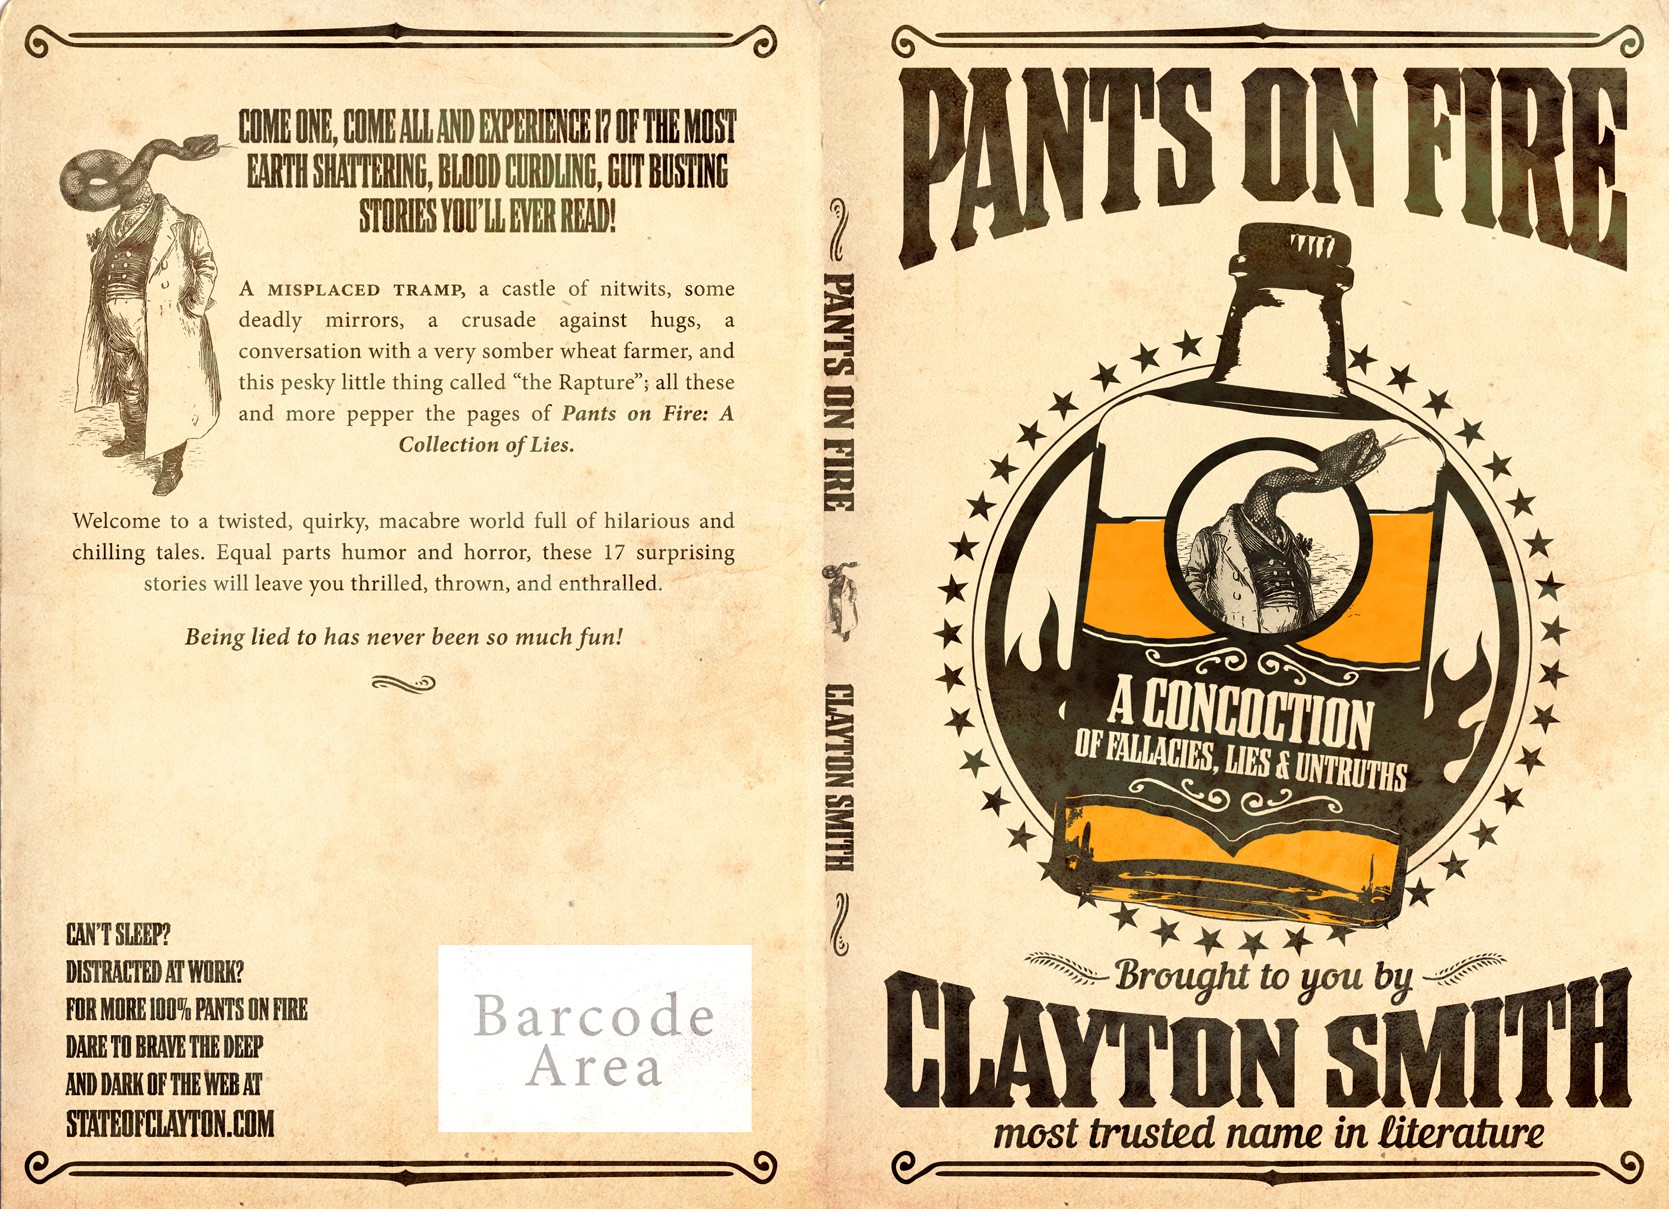 Create a fun book cover for Pants on Fire: A Collection of Lies!